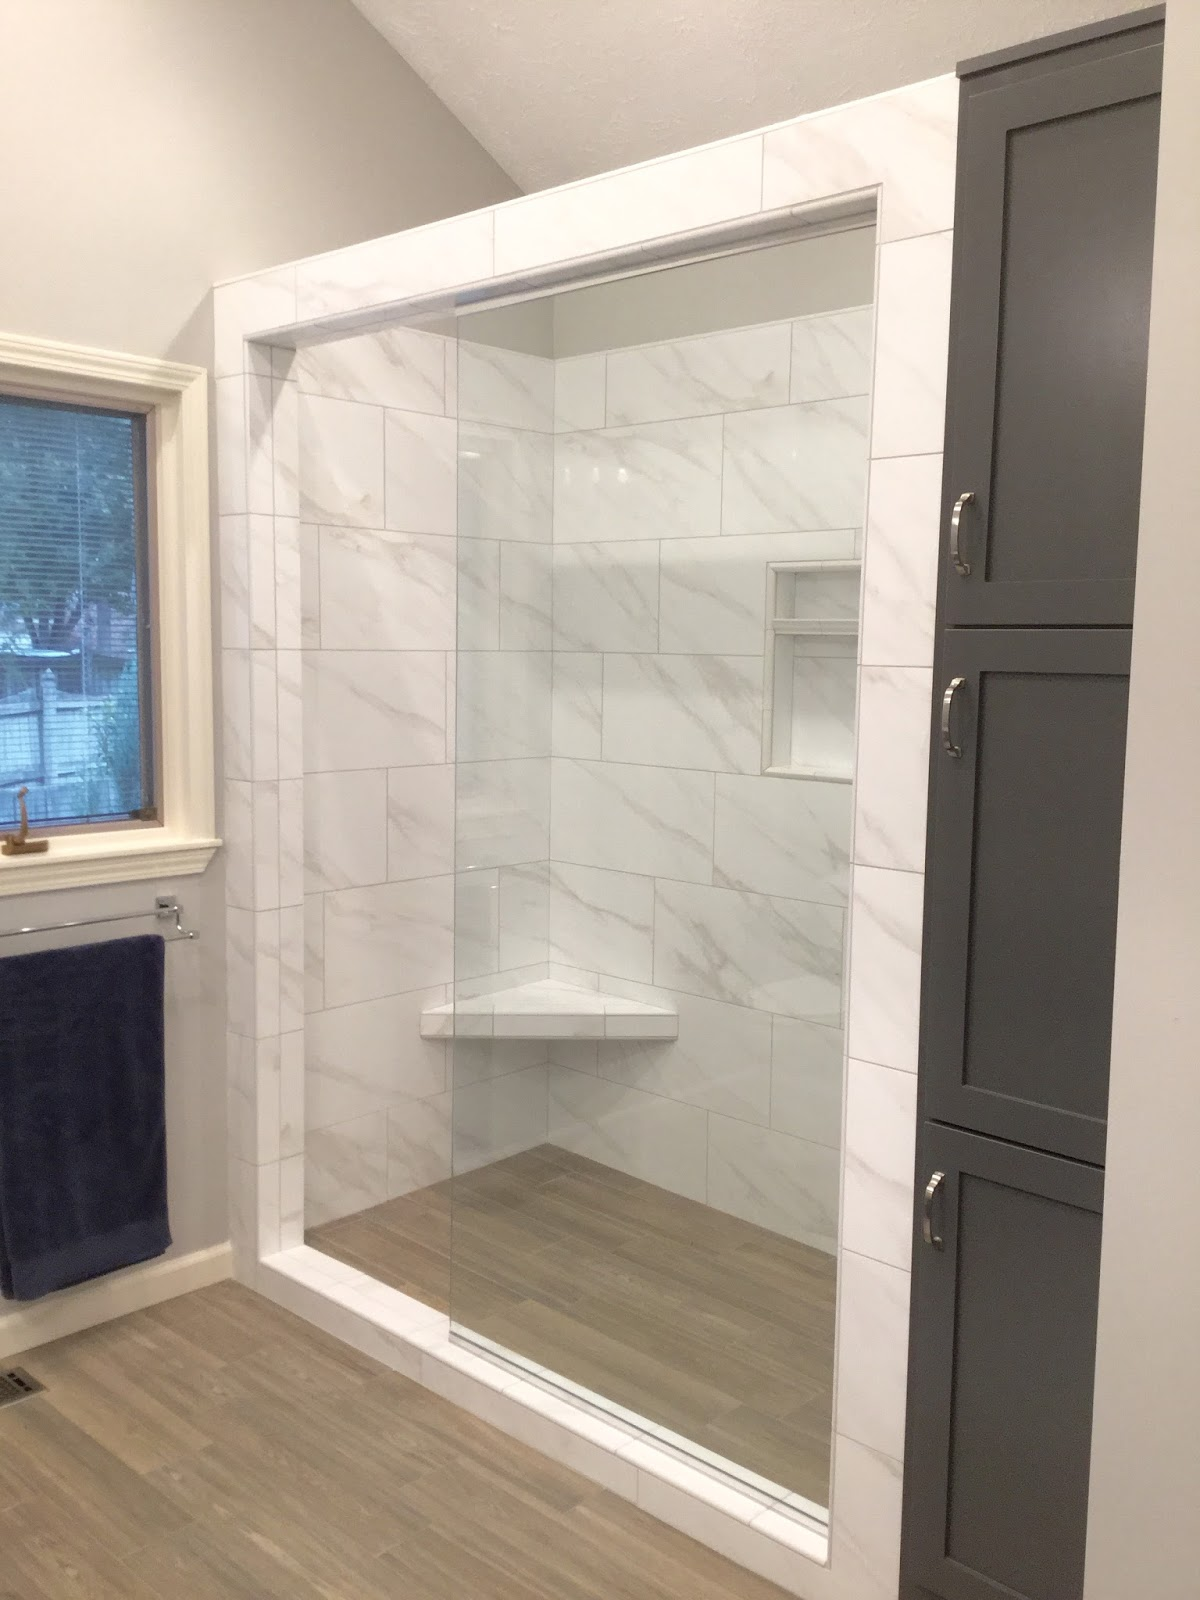 Fancy Hope you enjoyed seeing this Master Bathroom en suite renovation e to life Onto the next project